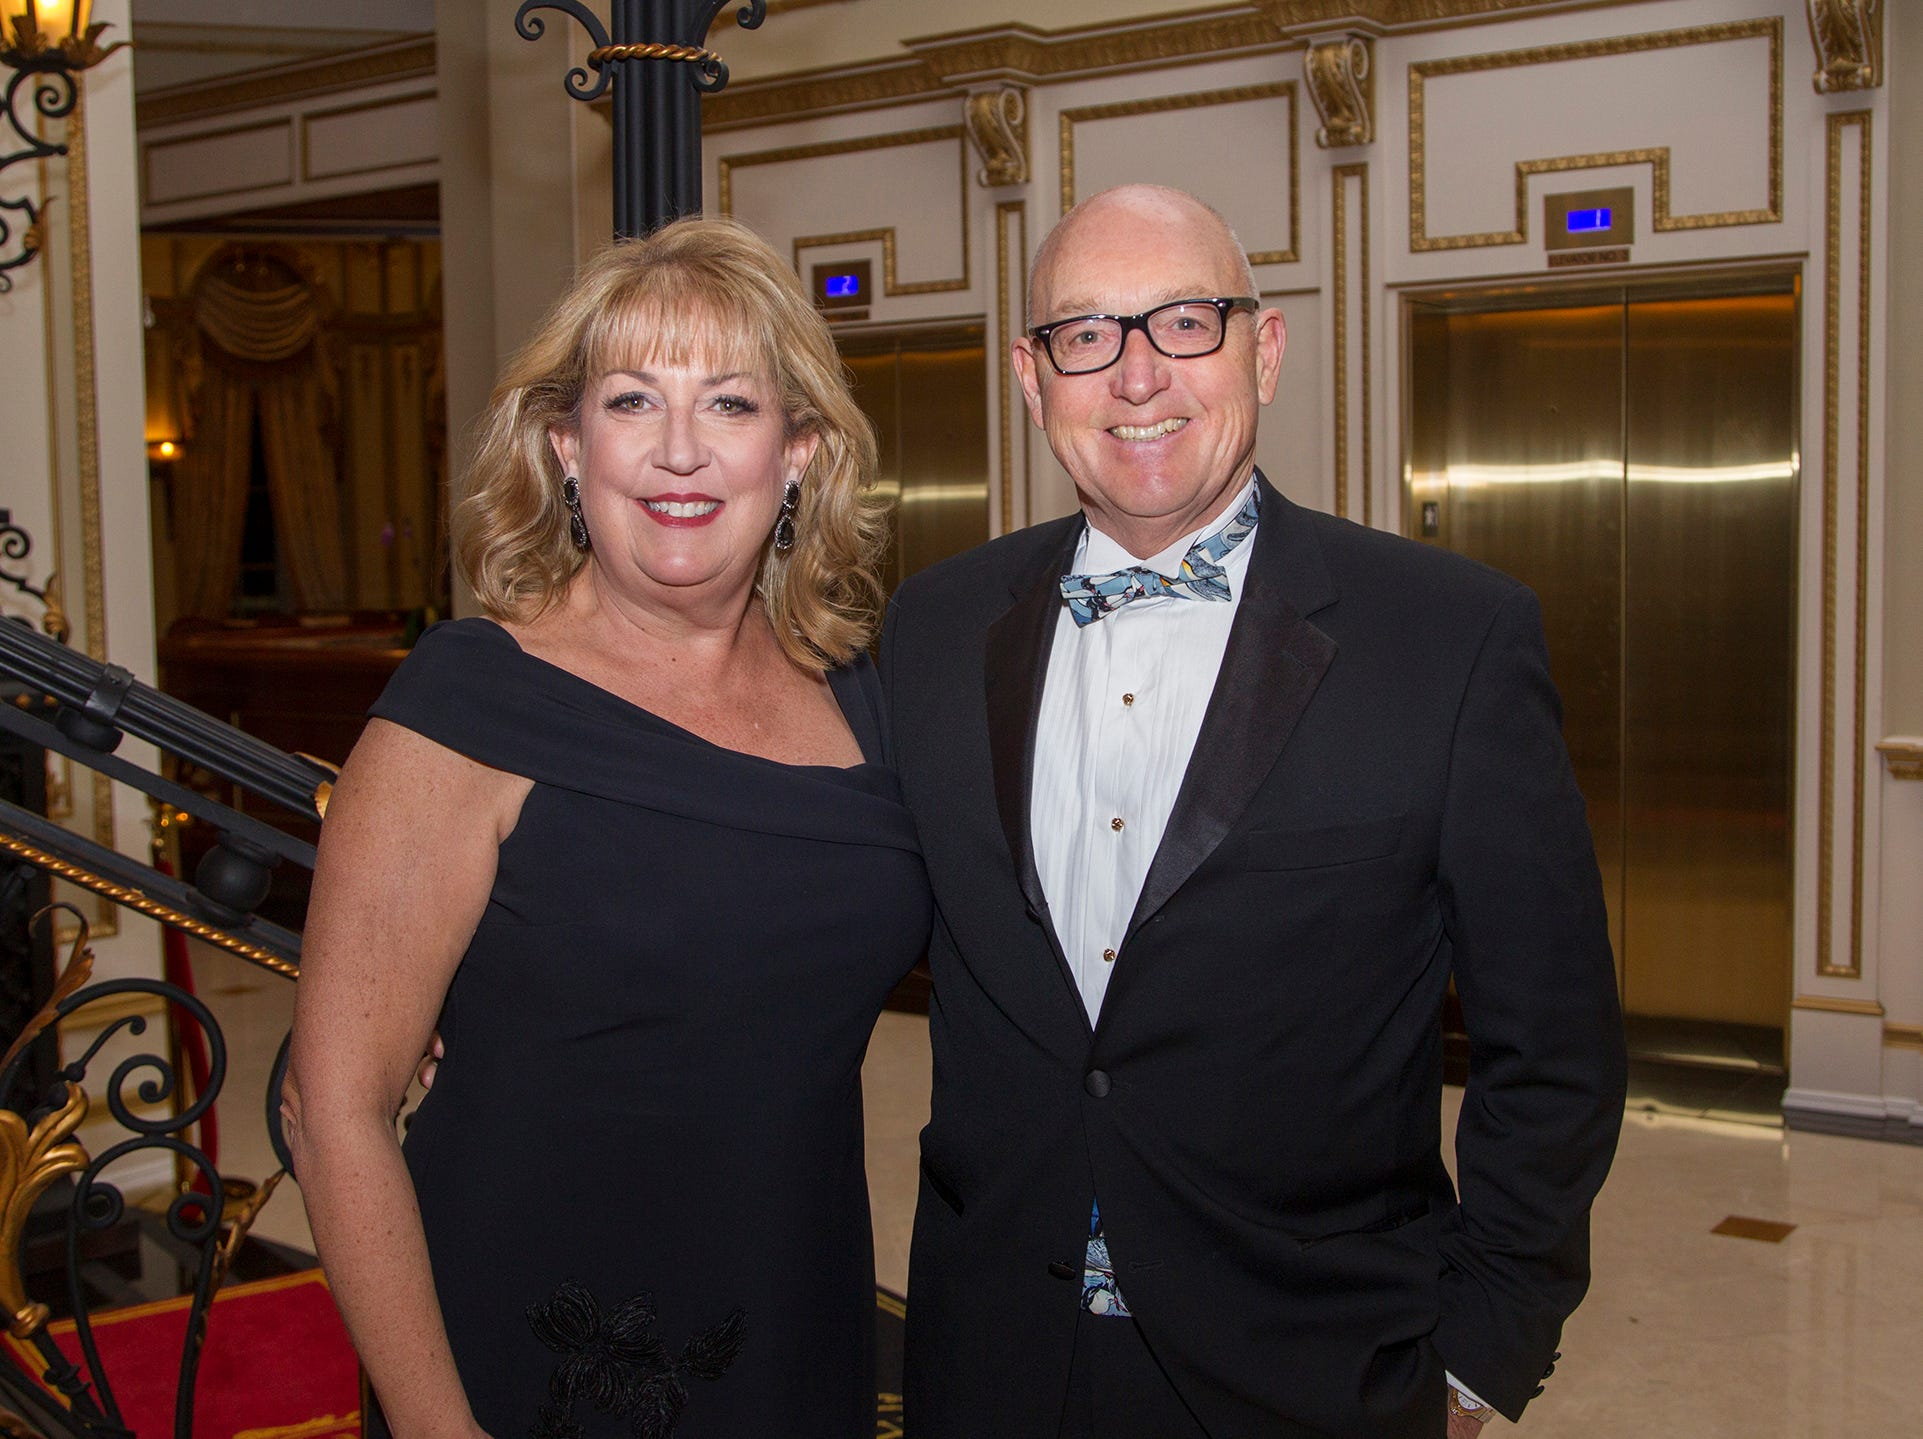 Dana and Roger Van Noorhis. The 72nd Annual Valley Ball gala at The Legacy Castle in Pompton Plains. 11/16/2018